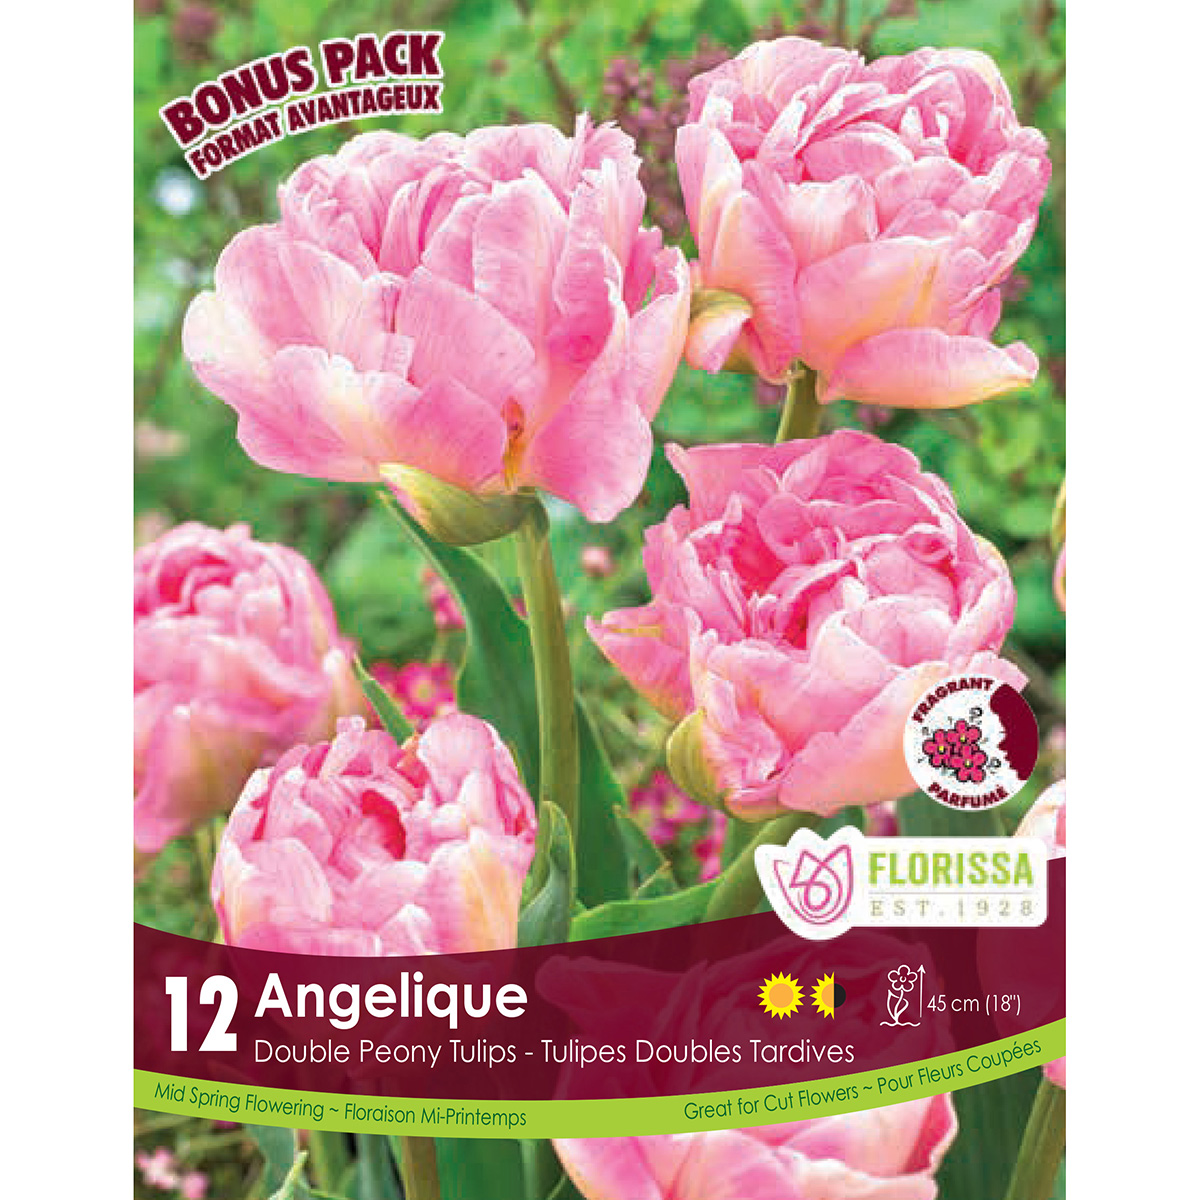 Mammoth Pack Tulipa 'Angelique' Bulbs